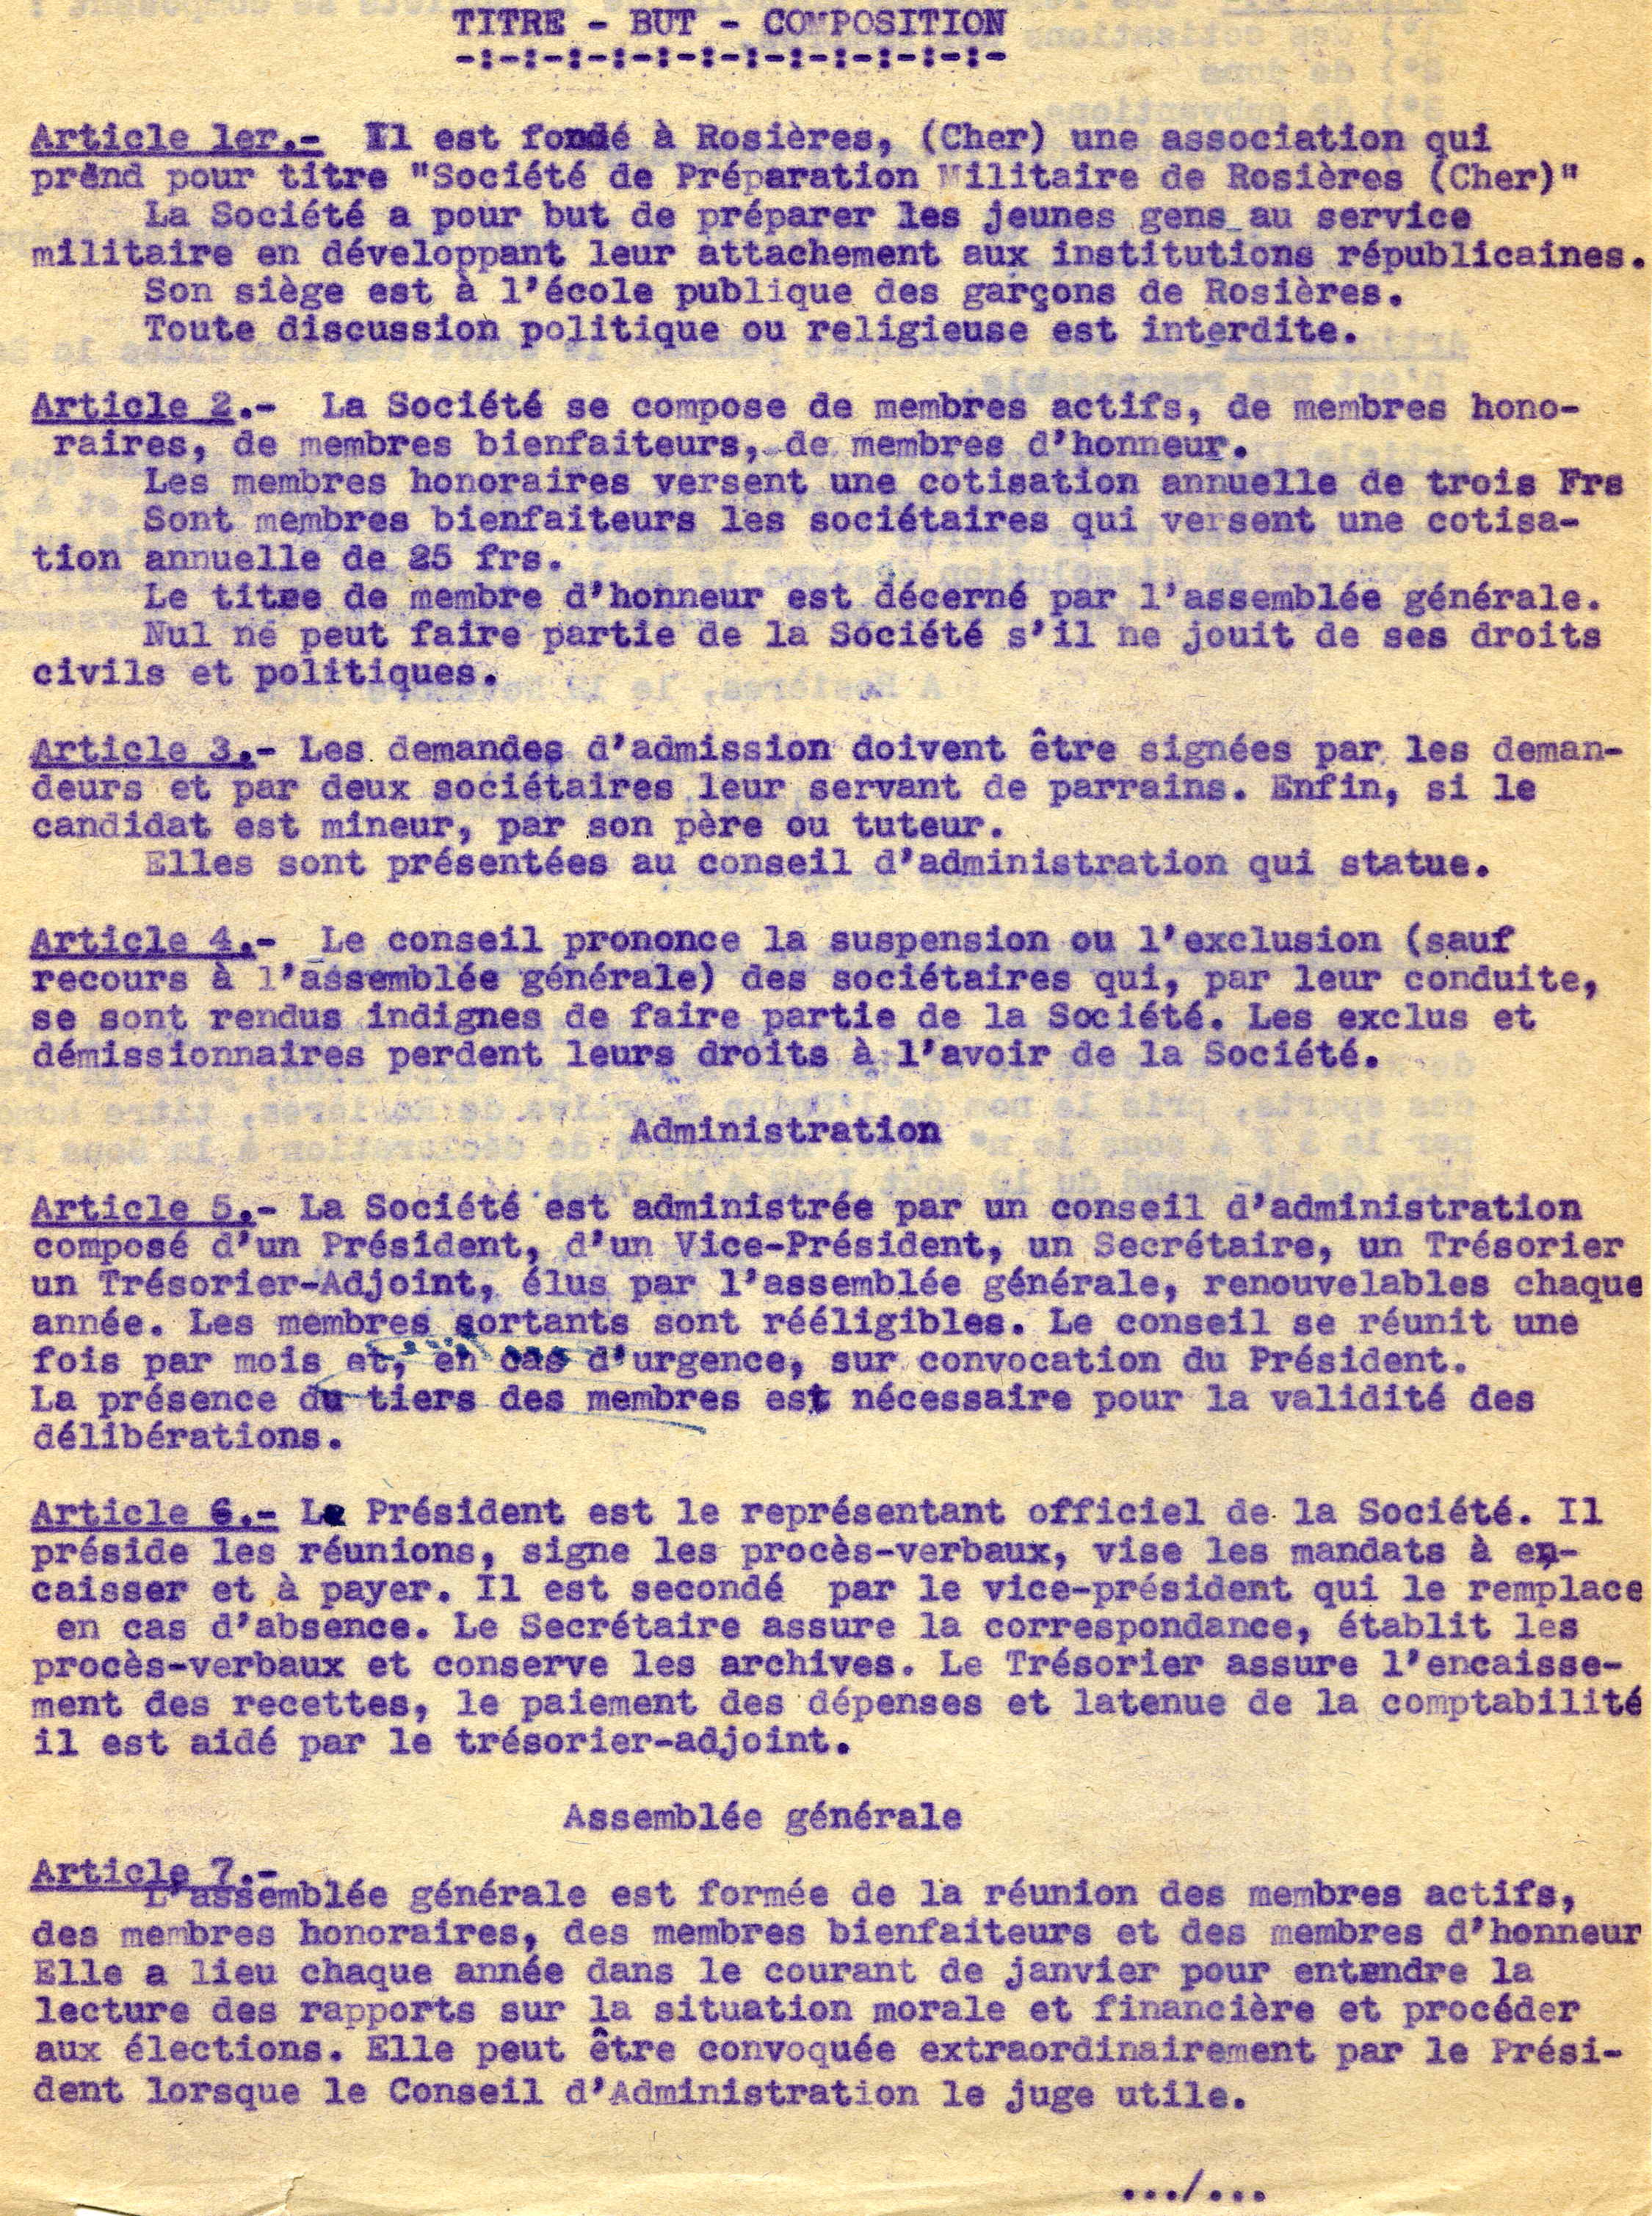 Modifications des statuts de l'association en 1942 (articles 1 à 7)